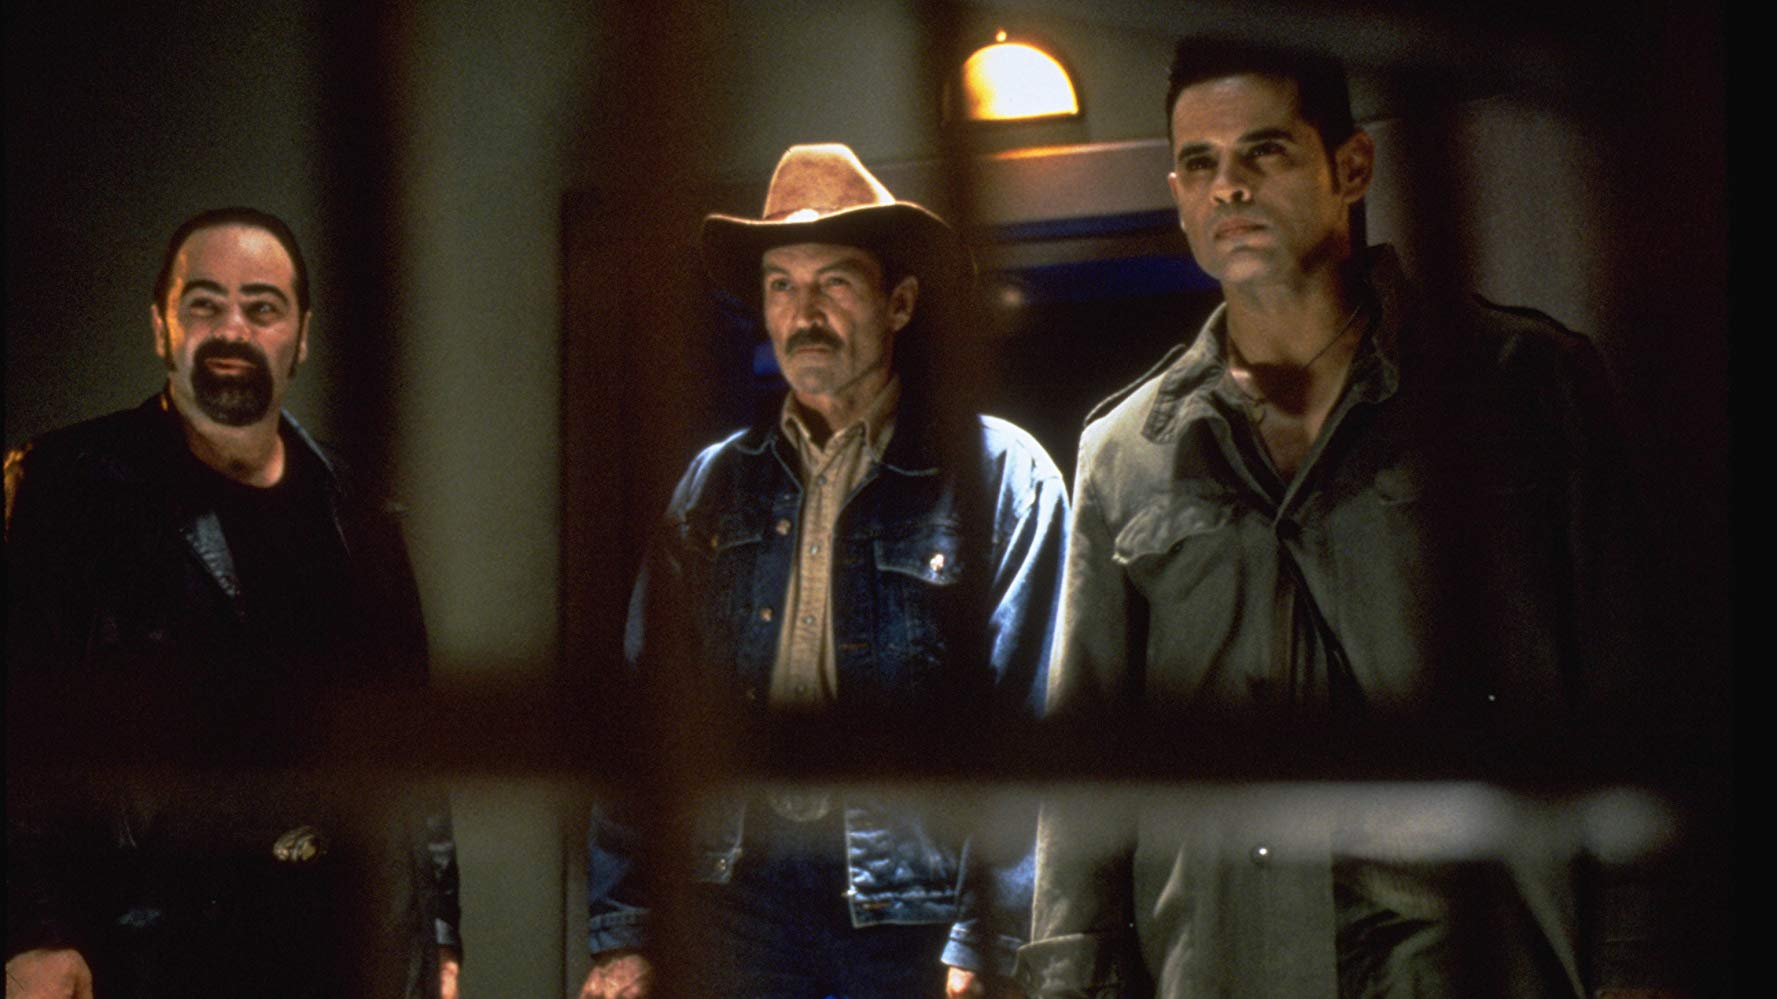 Bank robbers (l to r) Duane Whitaker, Muse Watson and Raymond Cruz in From Dusk Till Dawn 2: Texas Blood Money (1999)